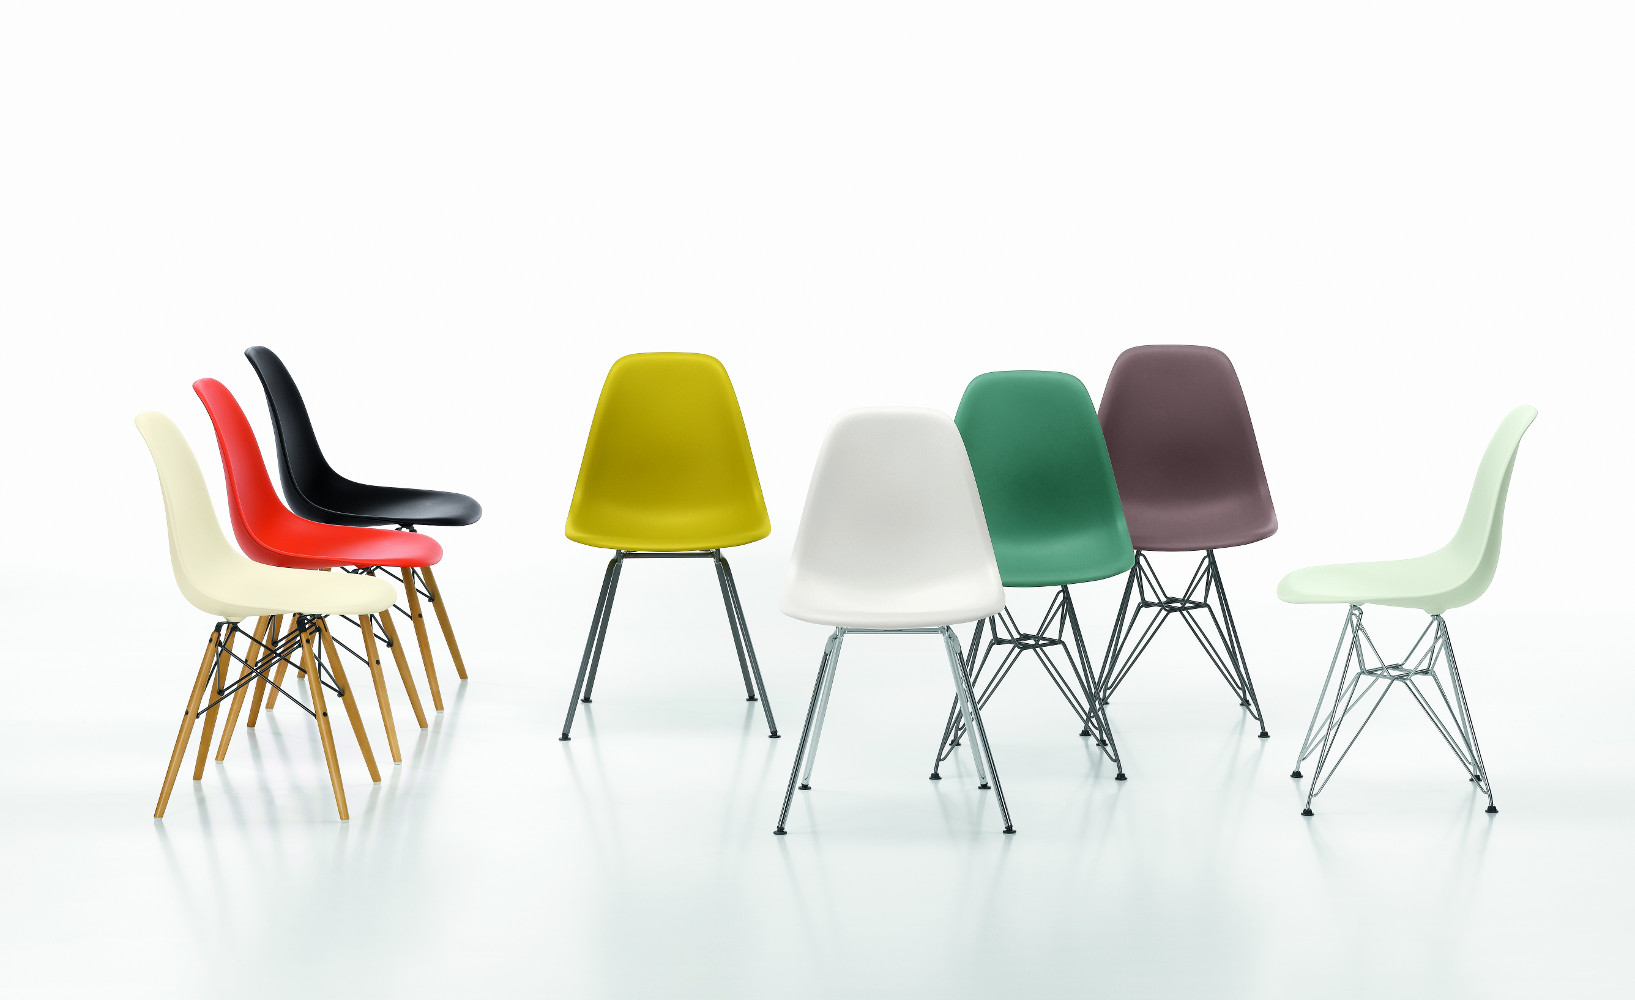 vitra stuhl eames plastic chair gruppe bunt. Black Bedroom Furniture Sets. Home Design Ideas